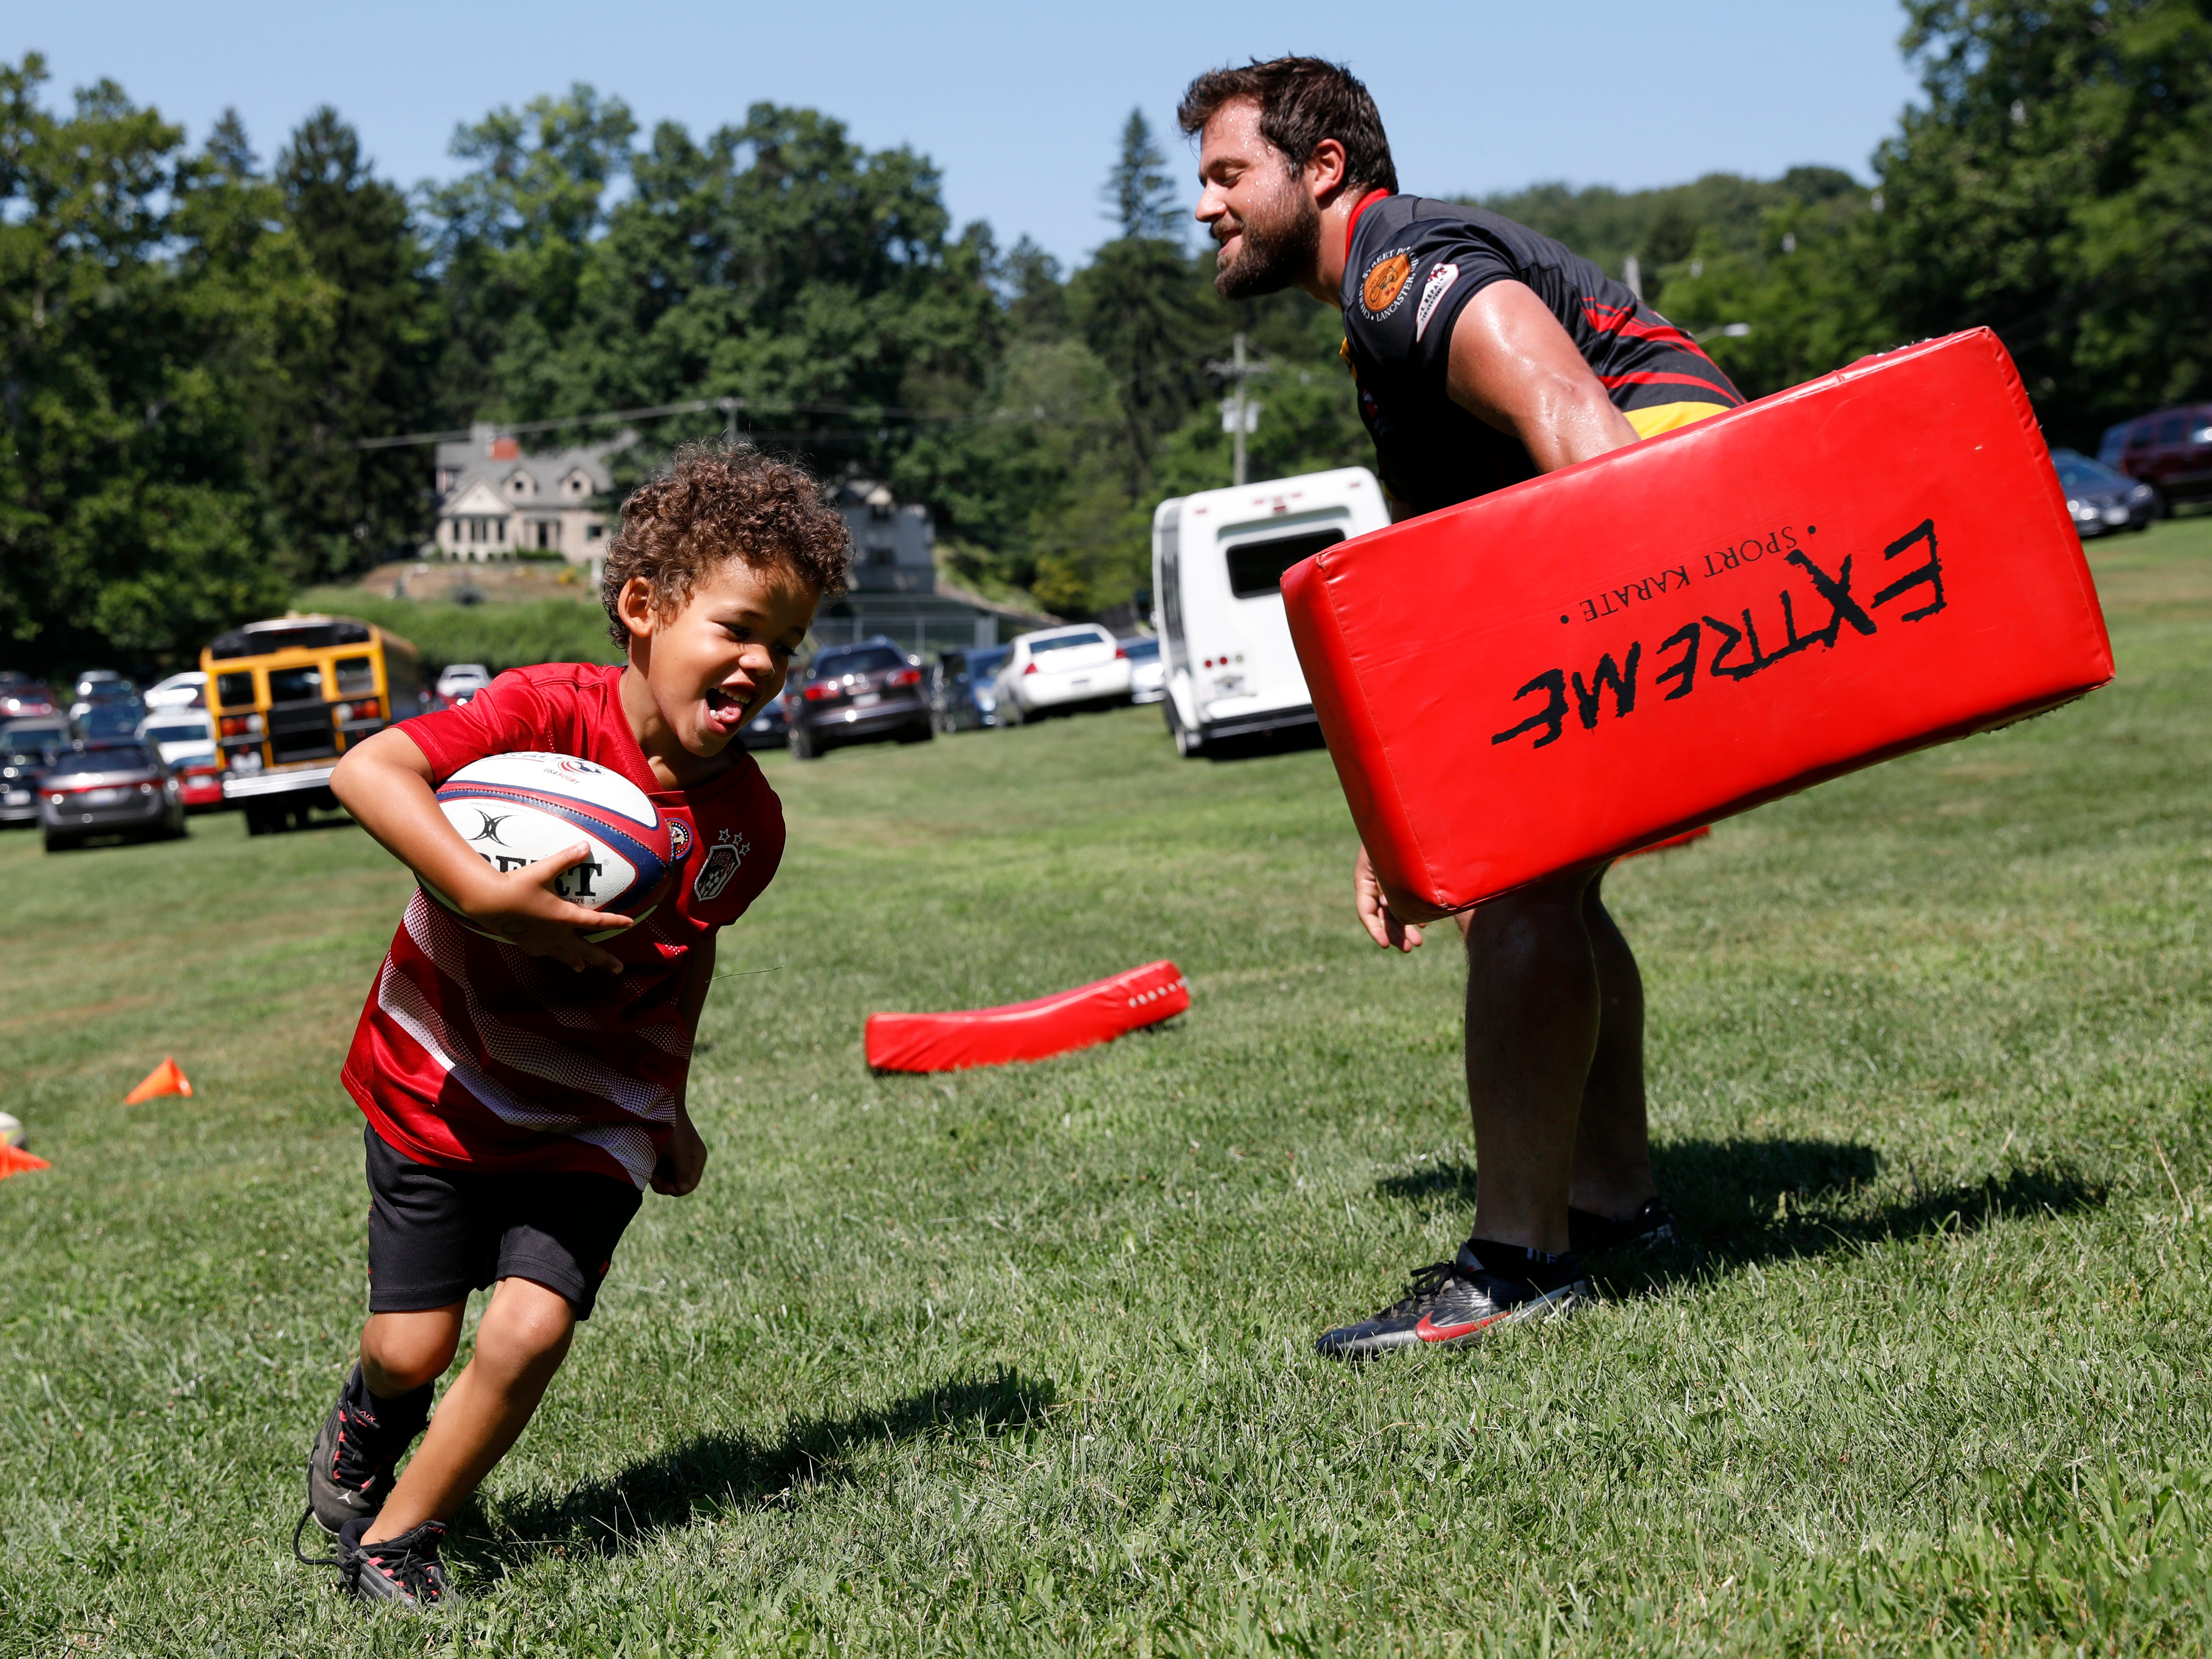 Mahkye Gamble, 7, runs past Rafael Lisboa after pushing him back to pick up the rugby ball Thursday, July 26, 2018, at Rising Park in Lancaster. Lisboa and other members of the Lancaster Men of Stone Rugby Club were teaching children basic rugby skills at the Lancaster Festival Rising Park Day.